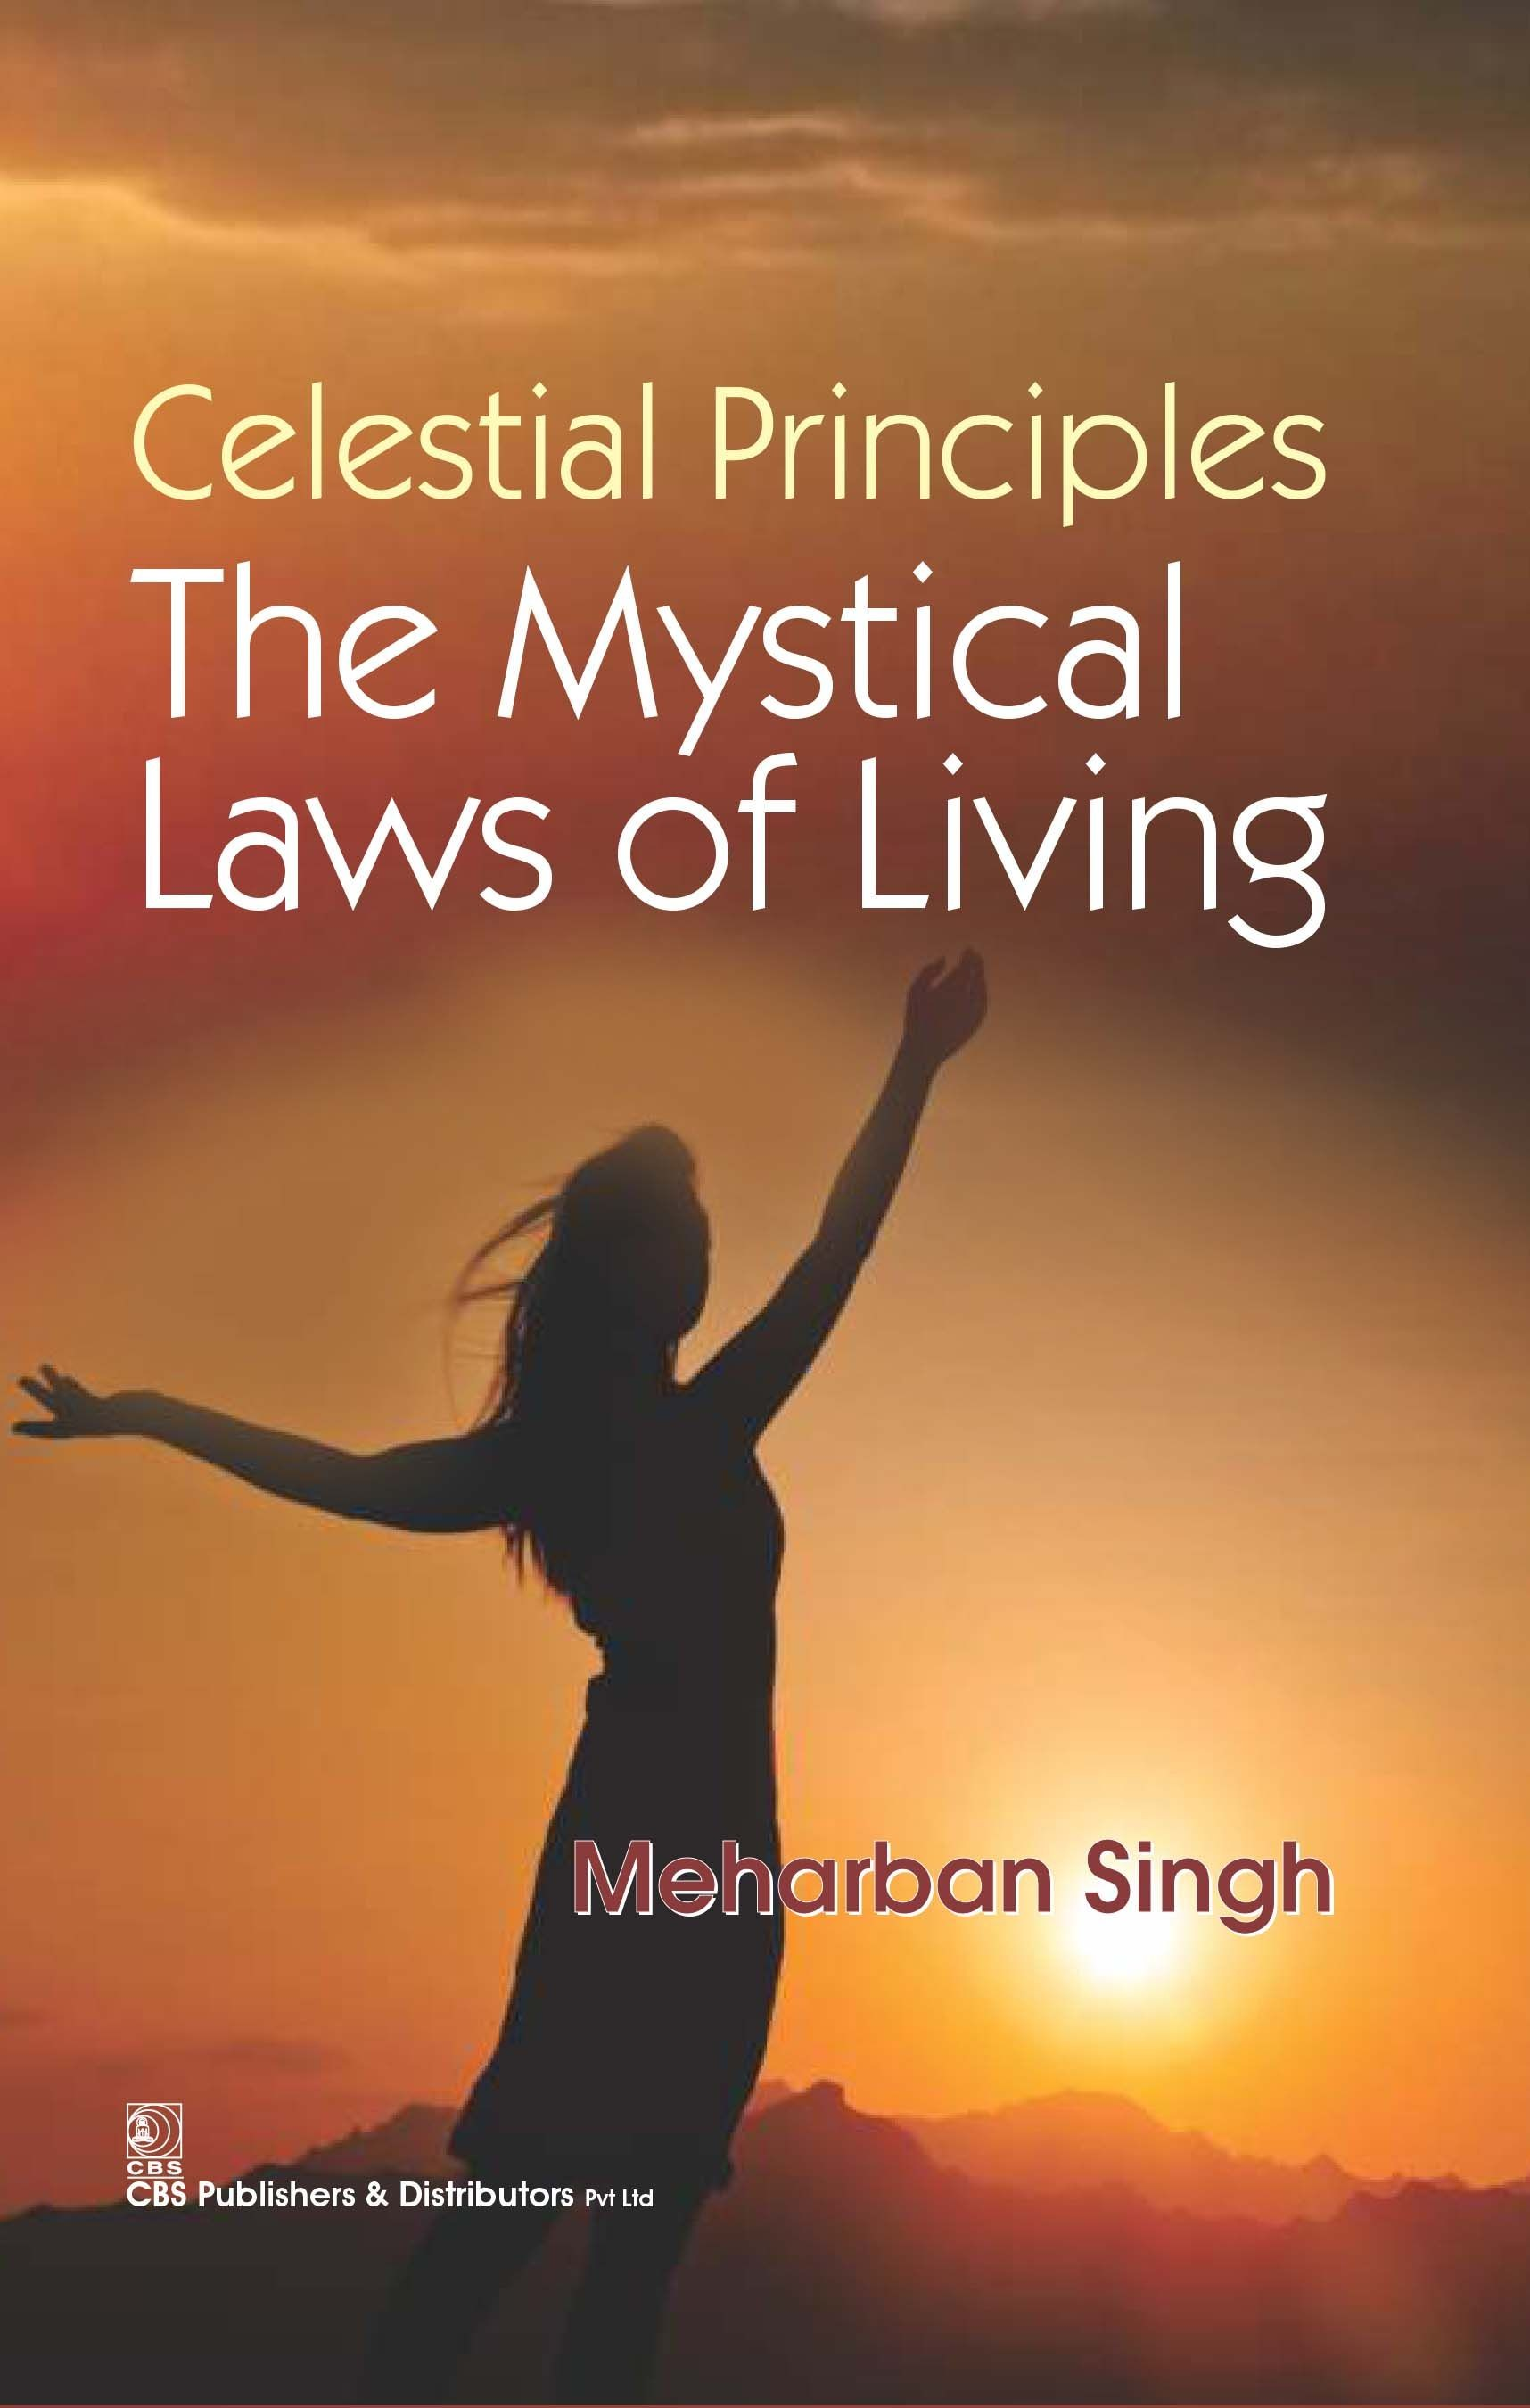 Celestial Principles The Mystical Laws Of Living (Pb 2016)